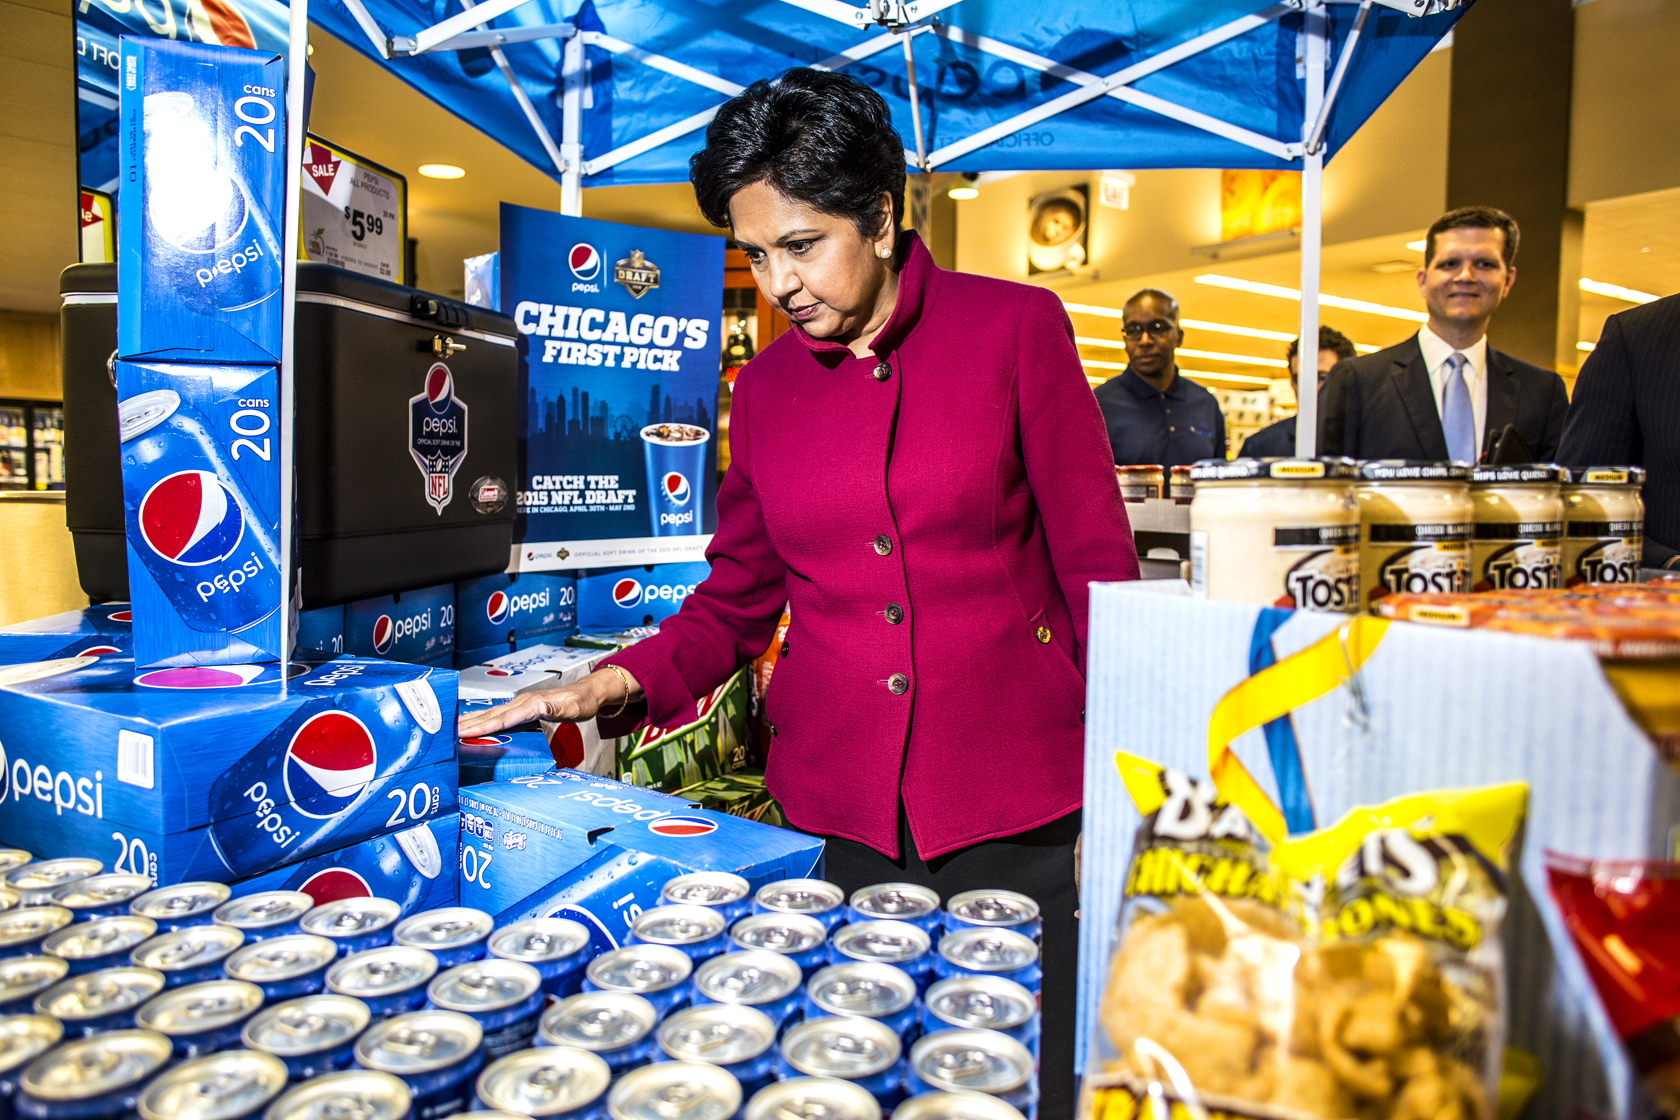 Indra Nooyi CEO of Pepsico touring Pete's Fresh Market in Chicago. April 2015